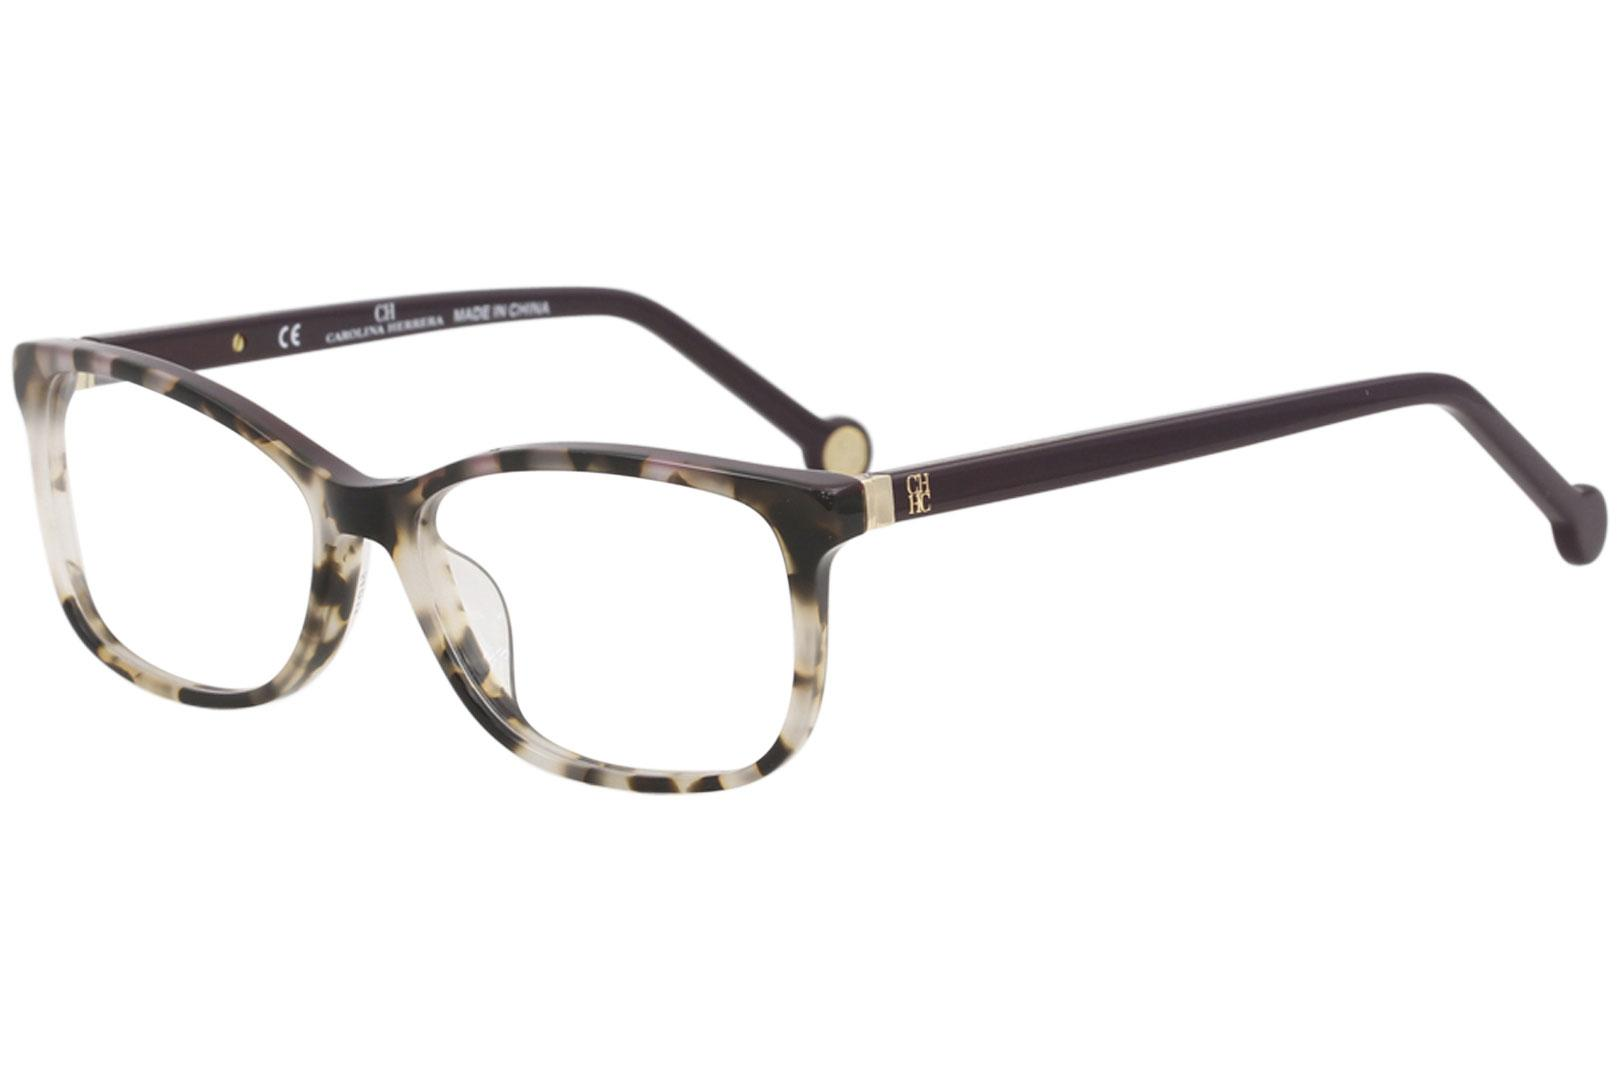 08b222f5ad CH Carolina Herrera Women s Eyeglasses VHE732K VHE 732K Full Rim Optical  Frame by Carolina Herrera. Touch to zoom